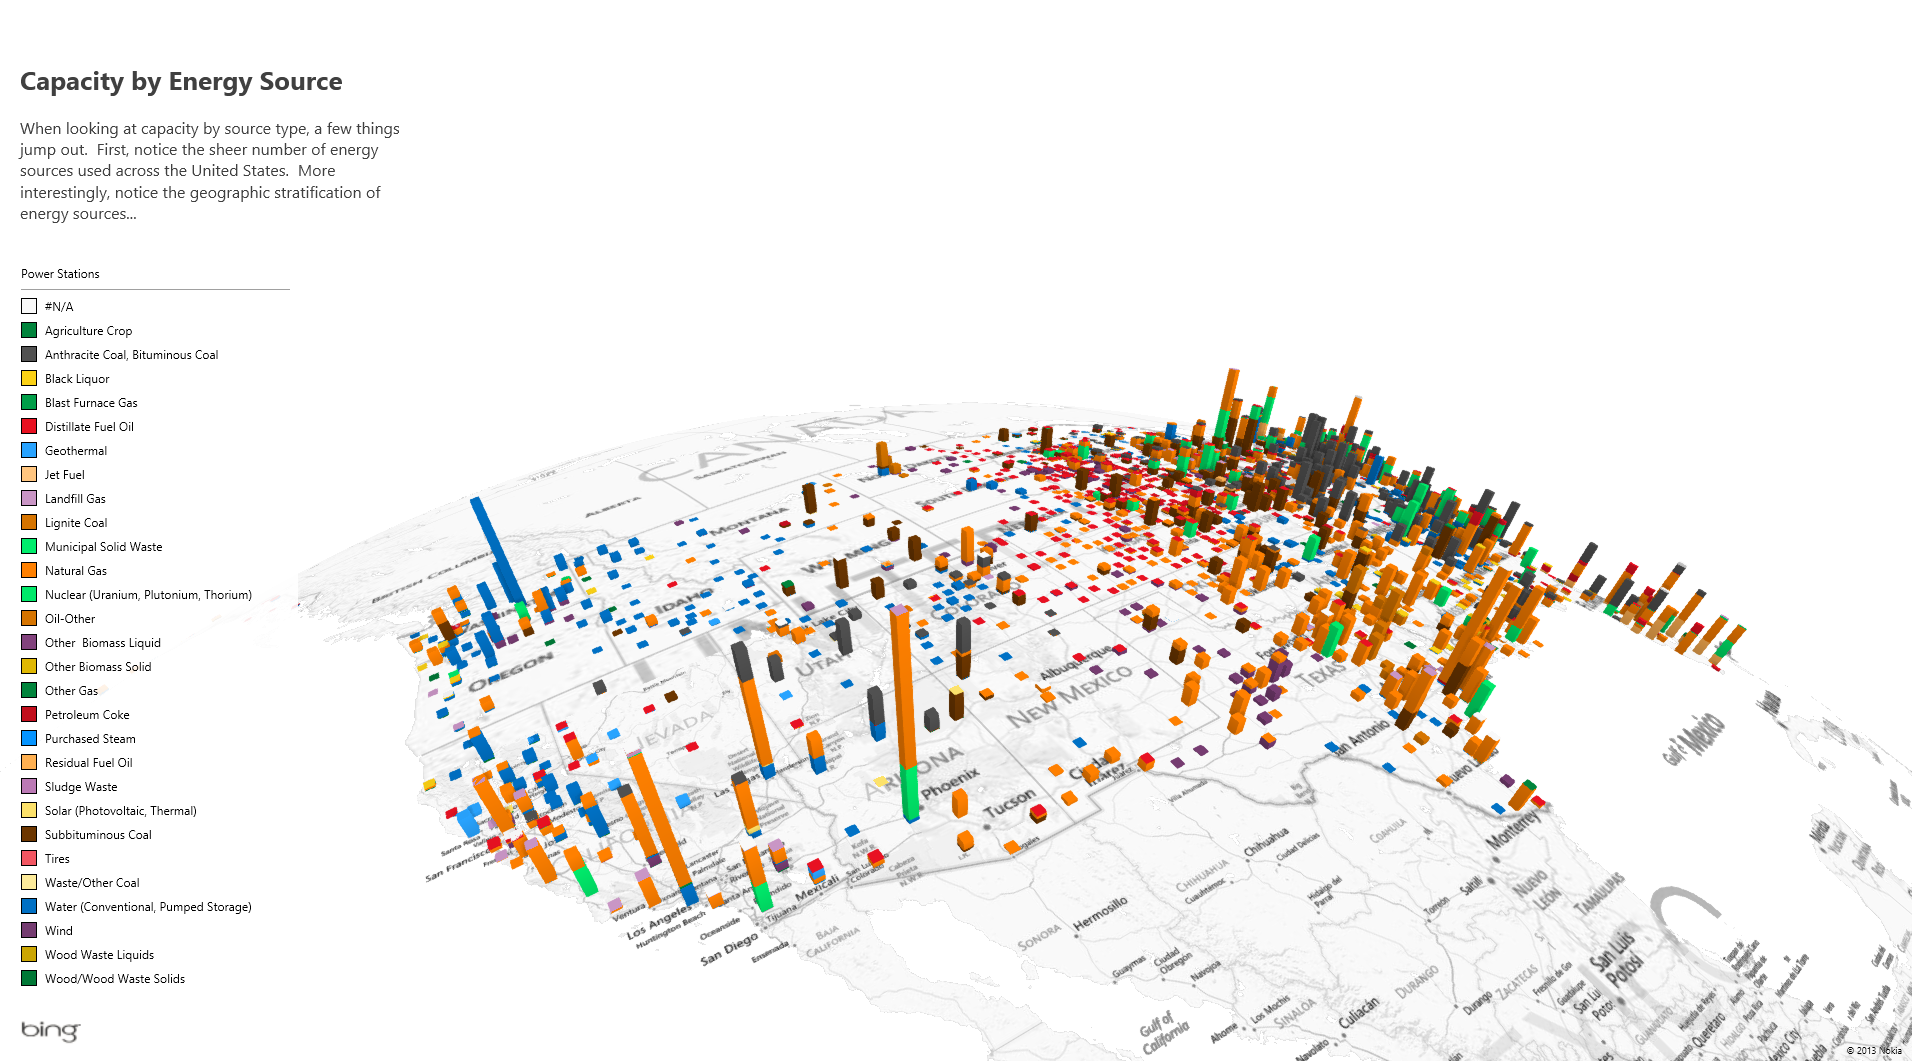 A view of a sample dataset in Power Map, which allow users to create rich 3D geospatial visualizations in Excel.